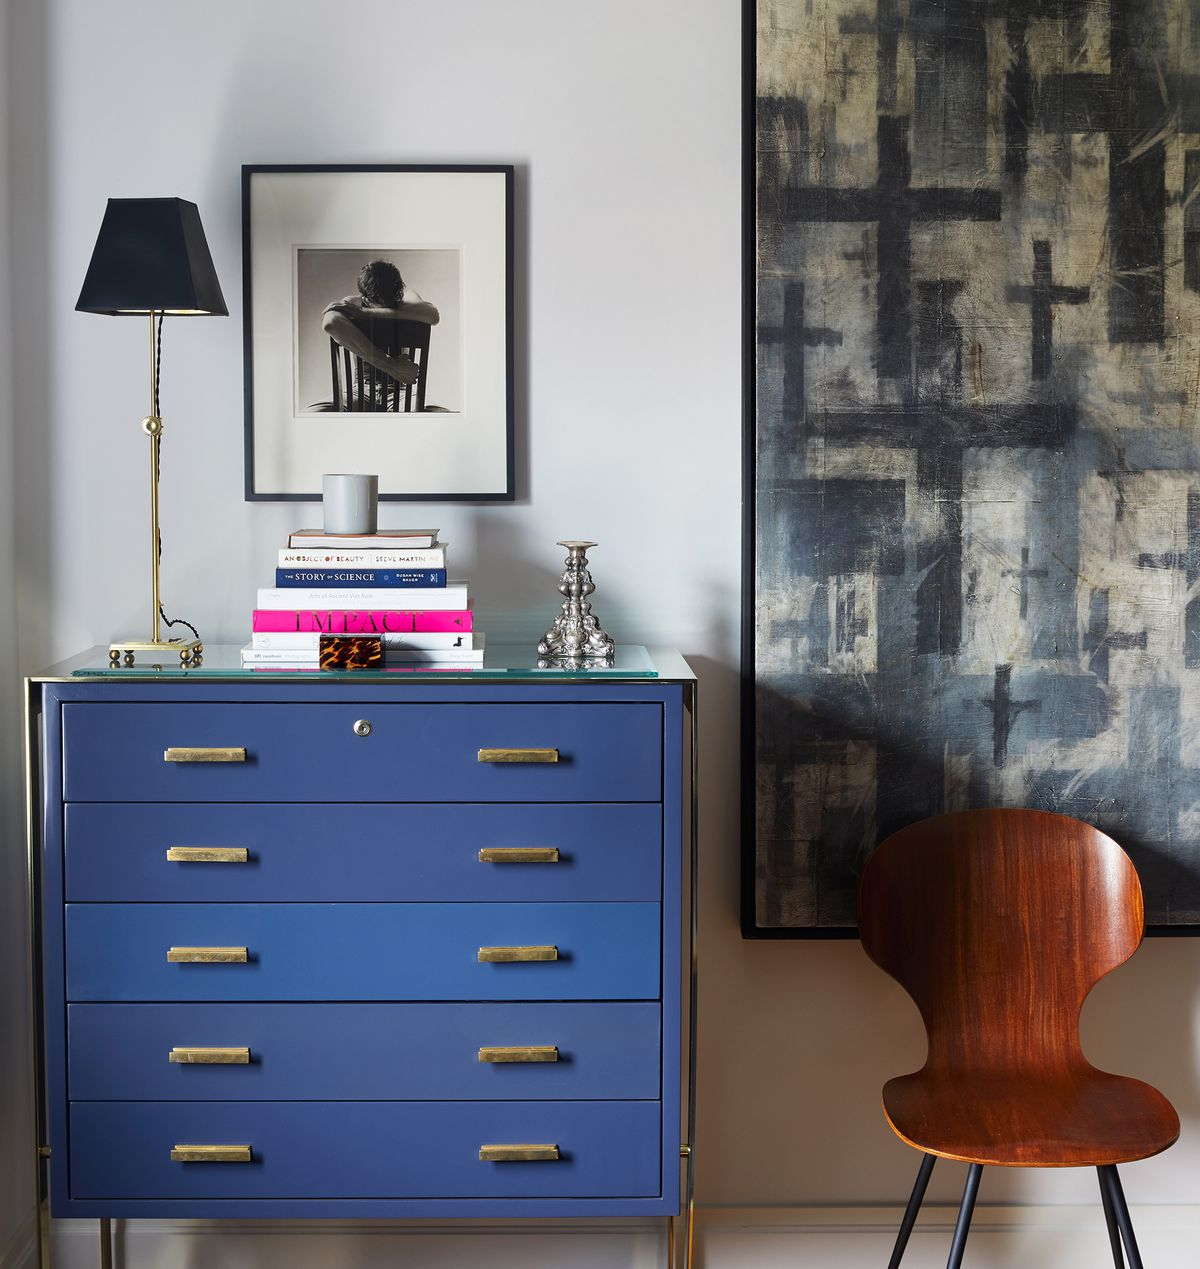 A black and white photo hangs above a blue chest of drawers in the master bedroom.